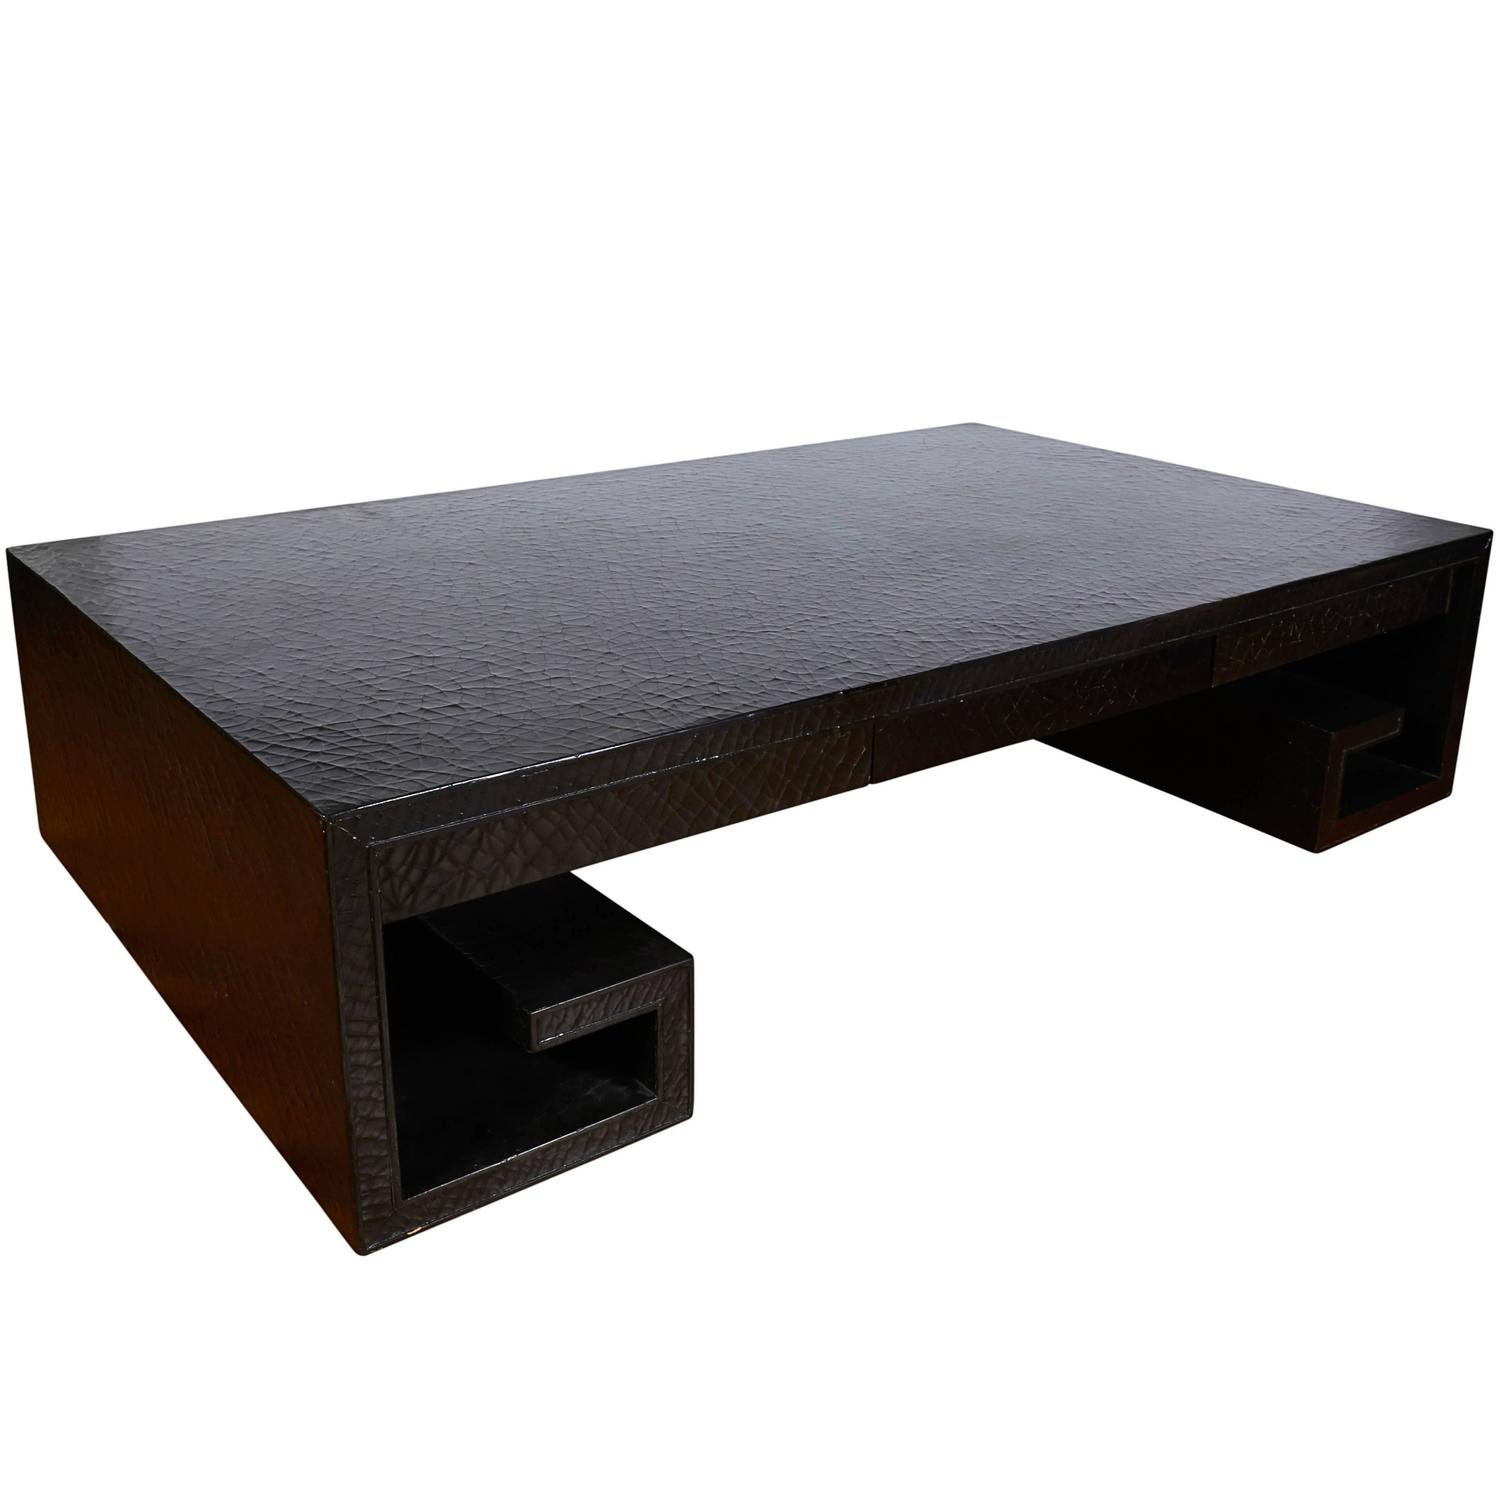 Thomas Pheasant Black Crackle Lacquer Scroll Coffee Table for